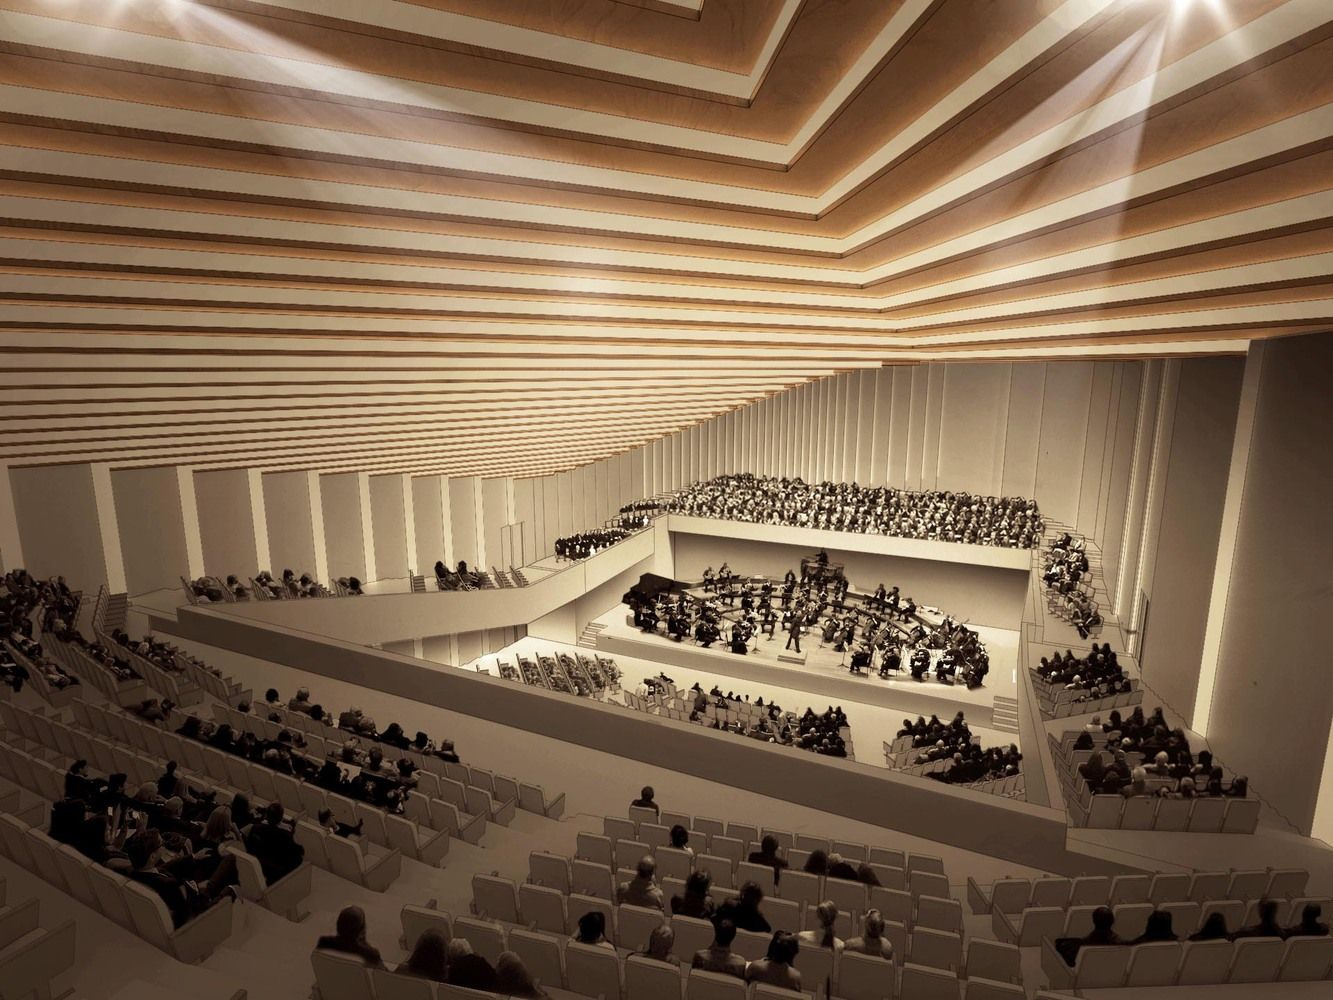 Gallery Of Award Winning Design Of Tokyo Music Hall Transforms Roof Into A Public Plaza 14 Auditorium Design Traditional Japanese Architecture Architecture